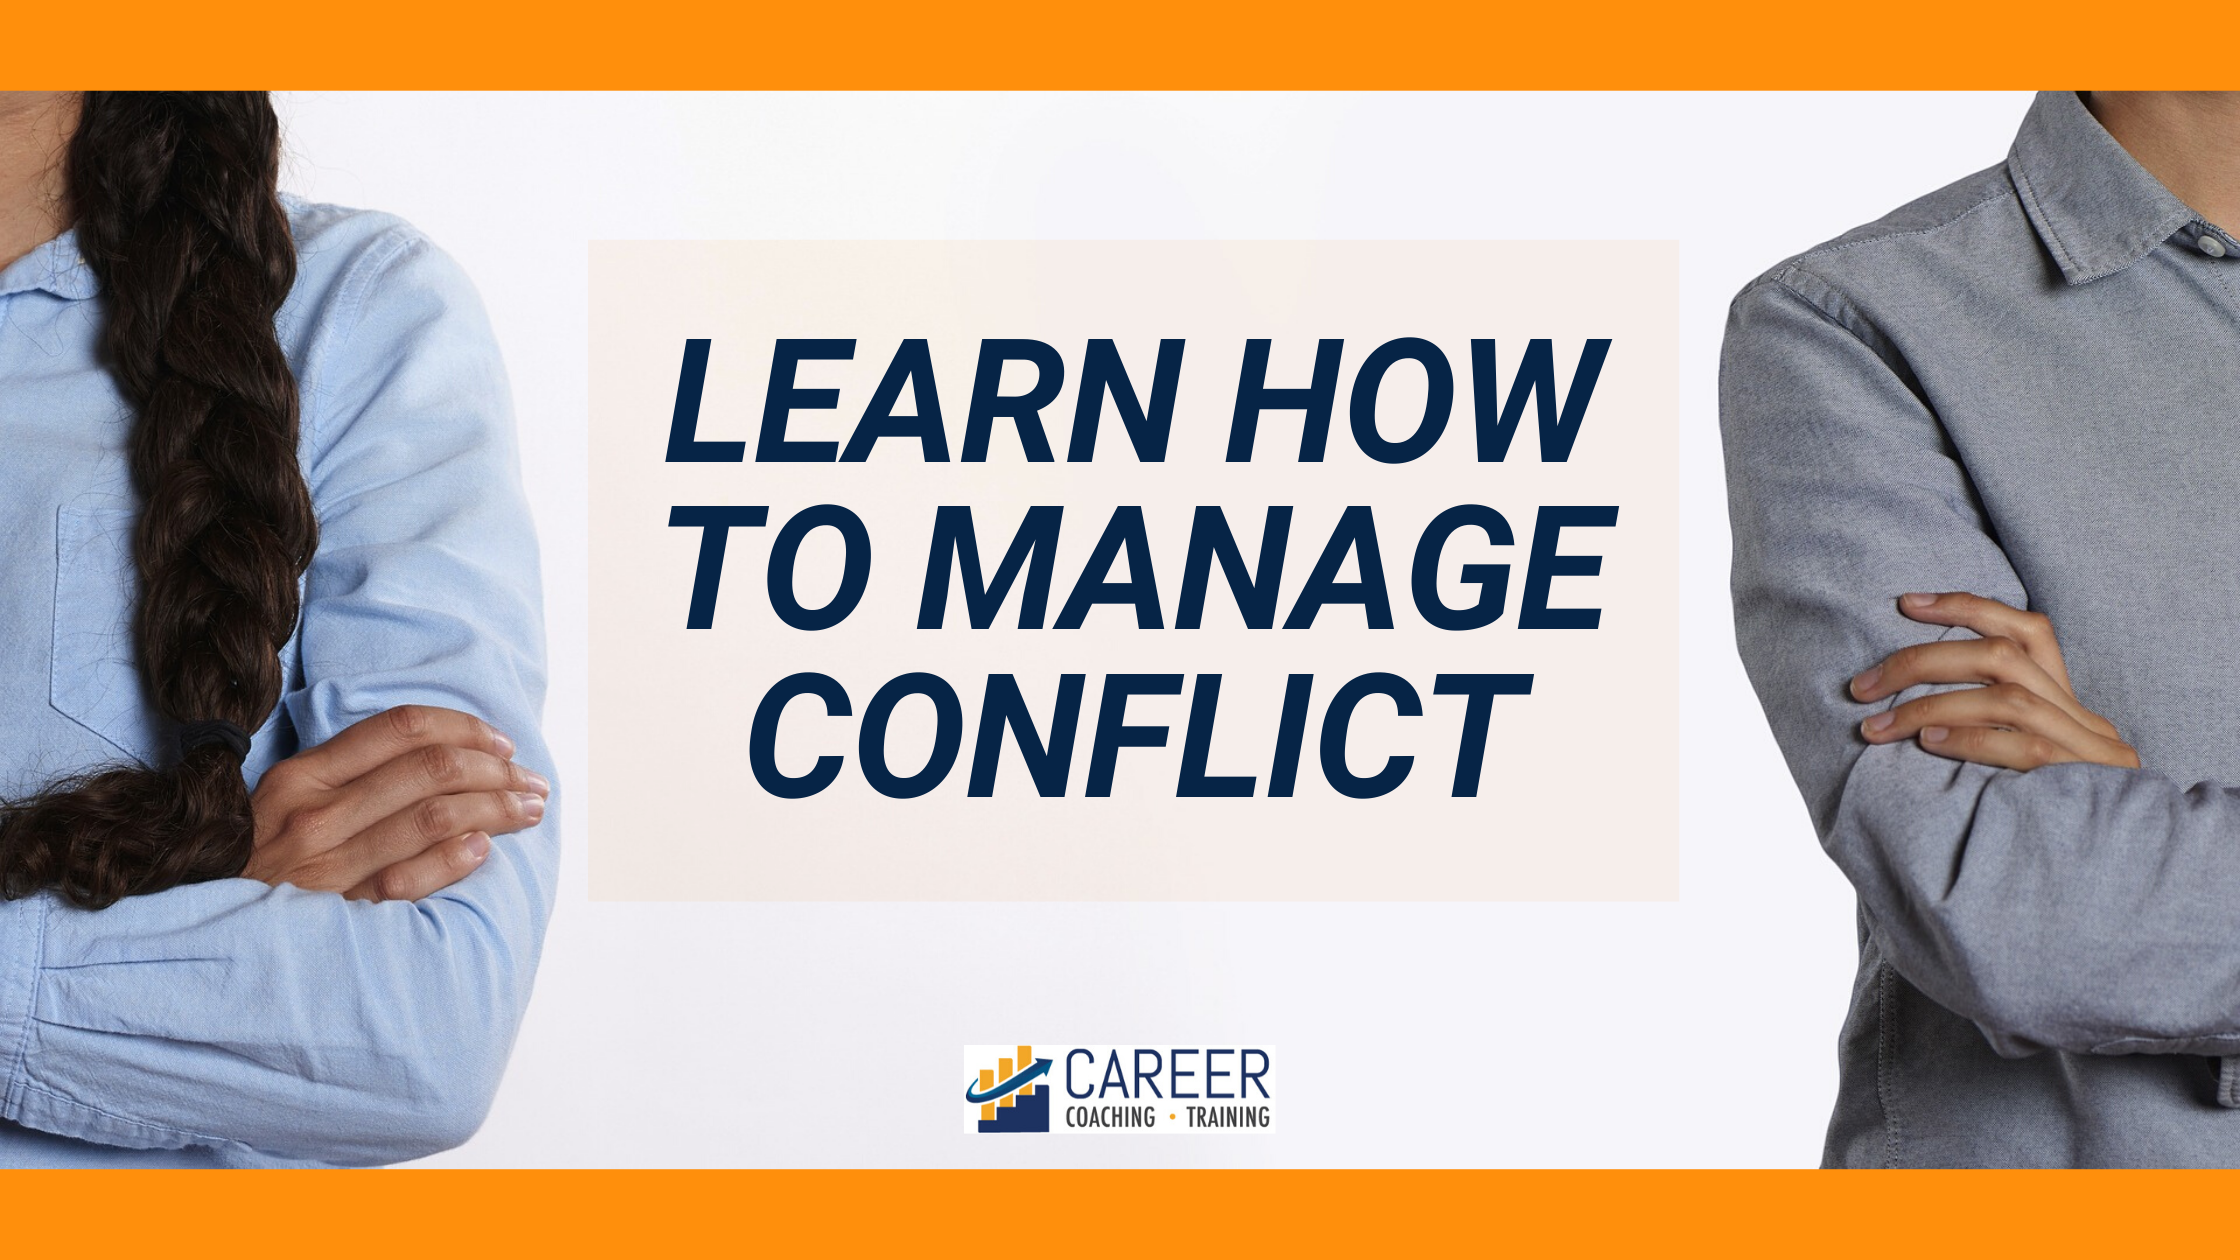 LEARN_HOW_TO_MANAGE_CONFLICT